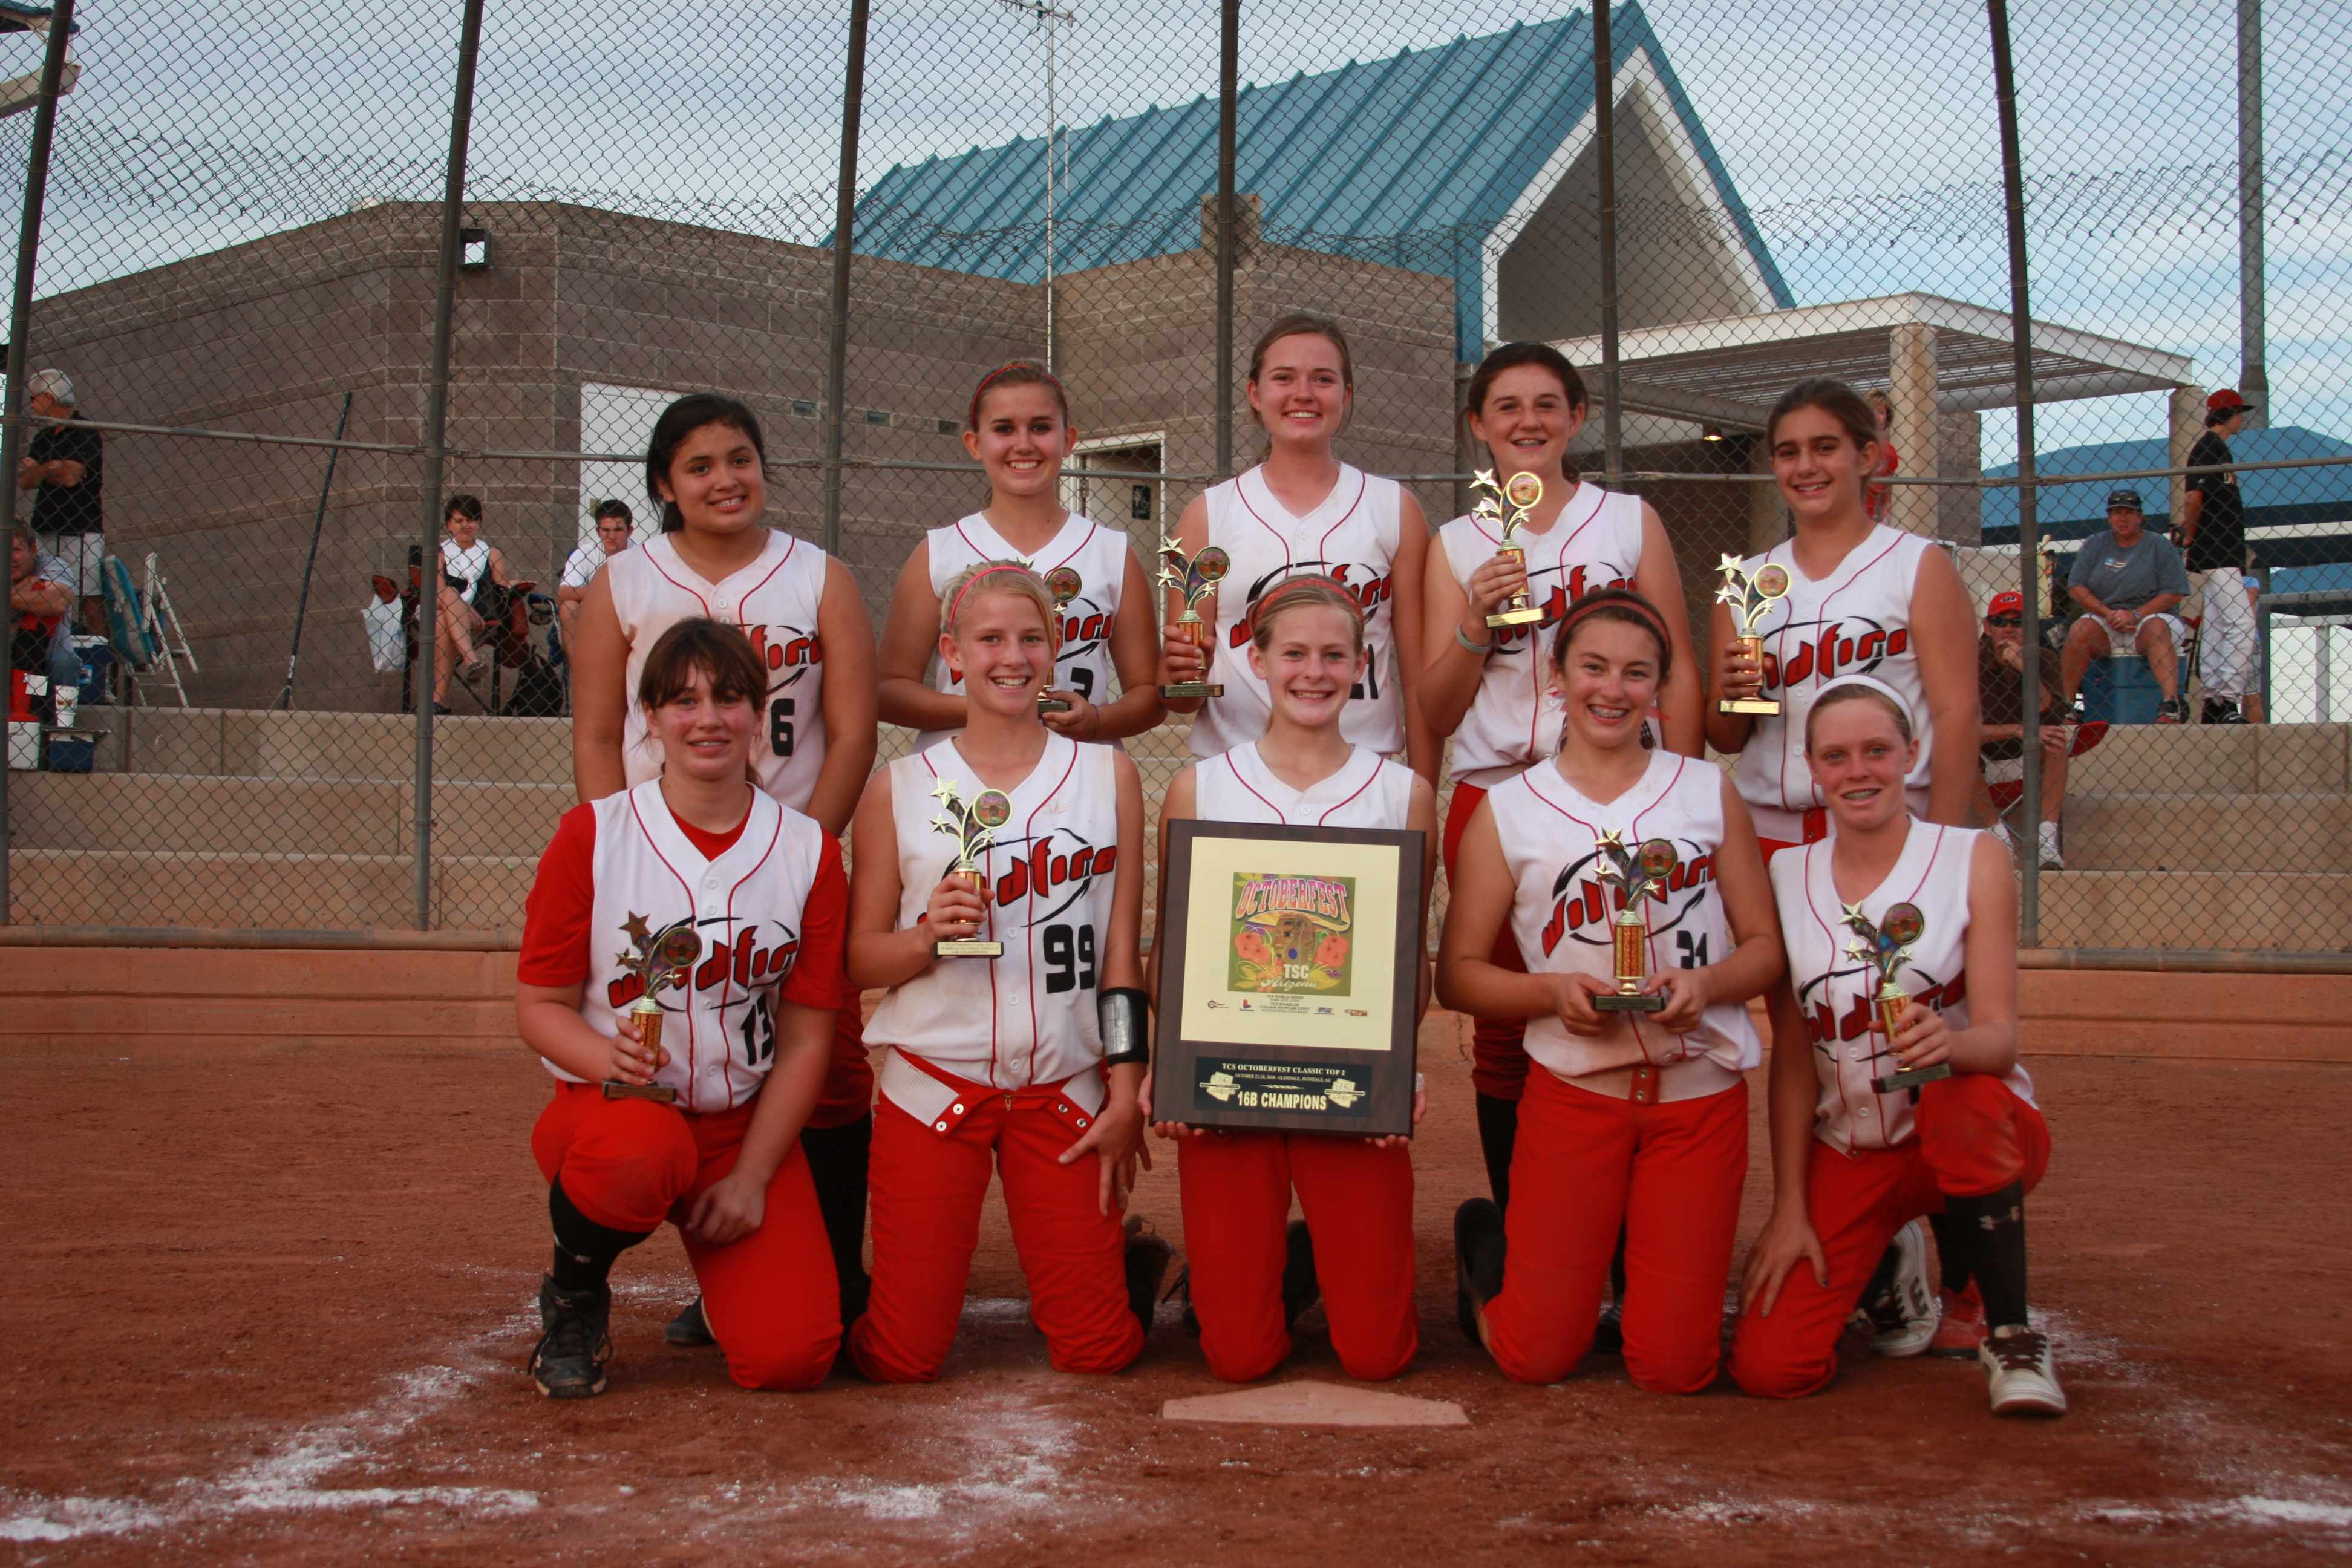 Softball National Rankings: June 10th- 12B #5-1 | Youth1